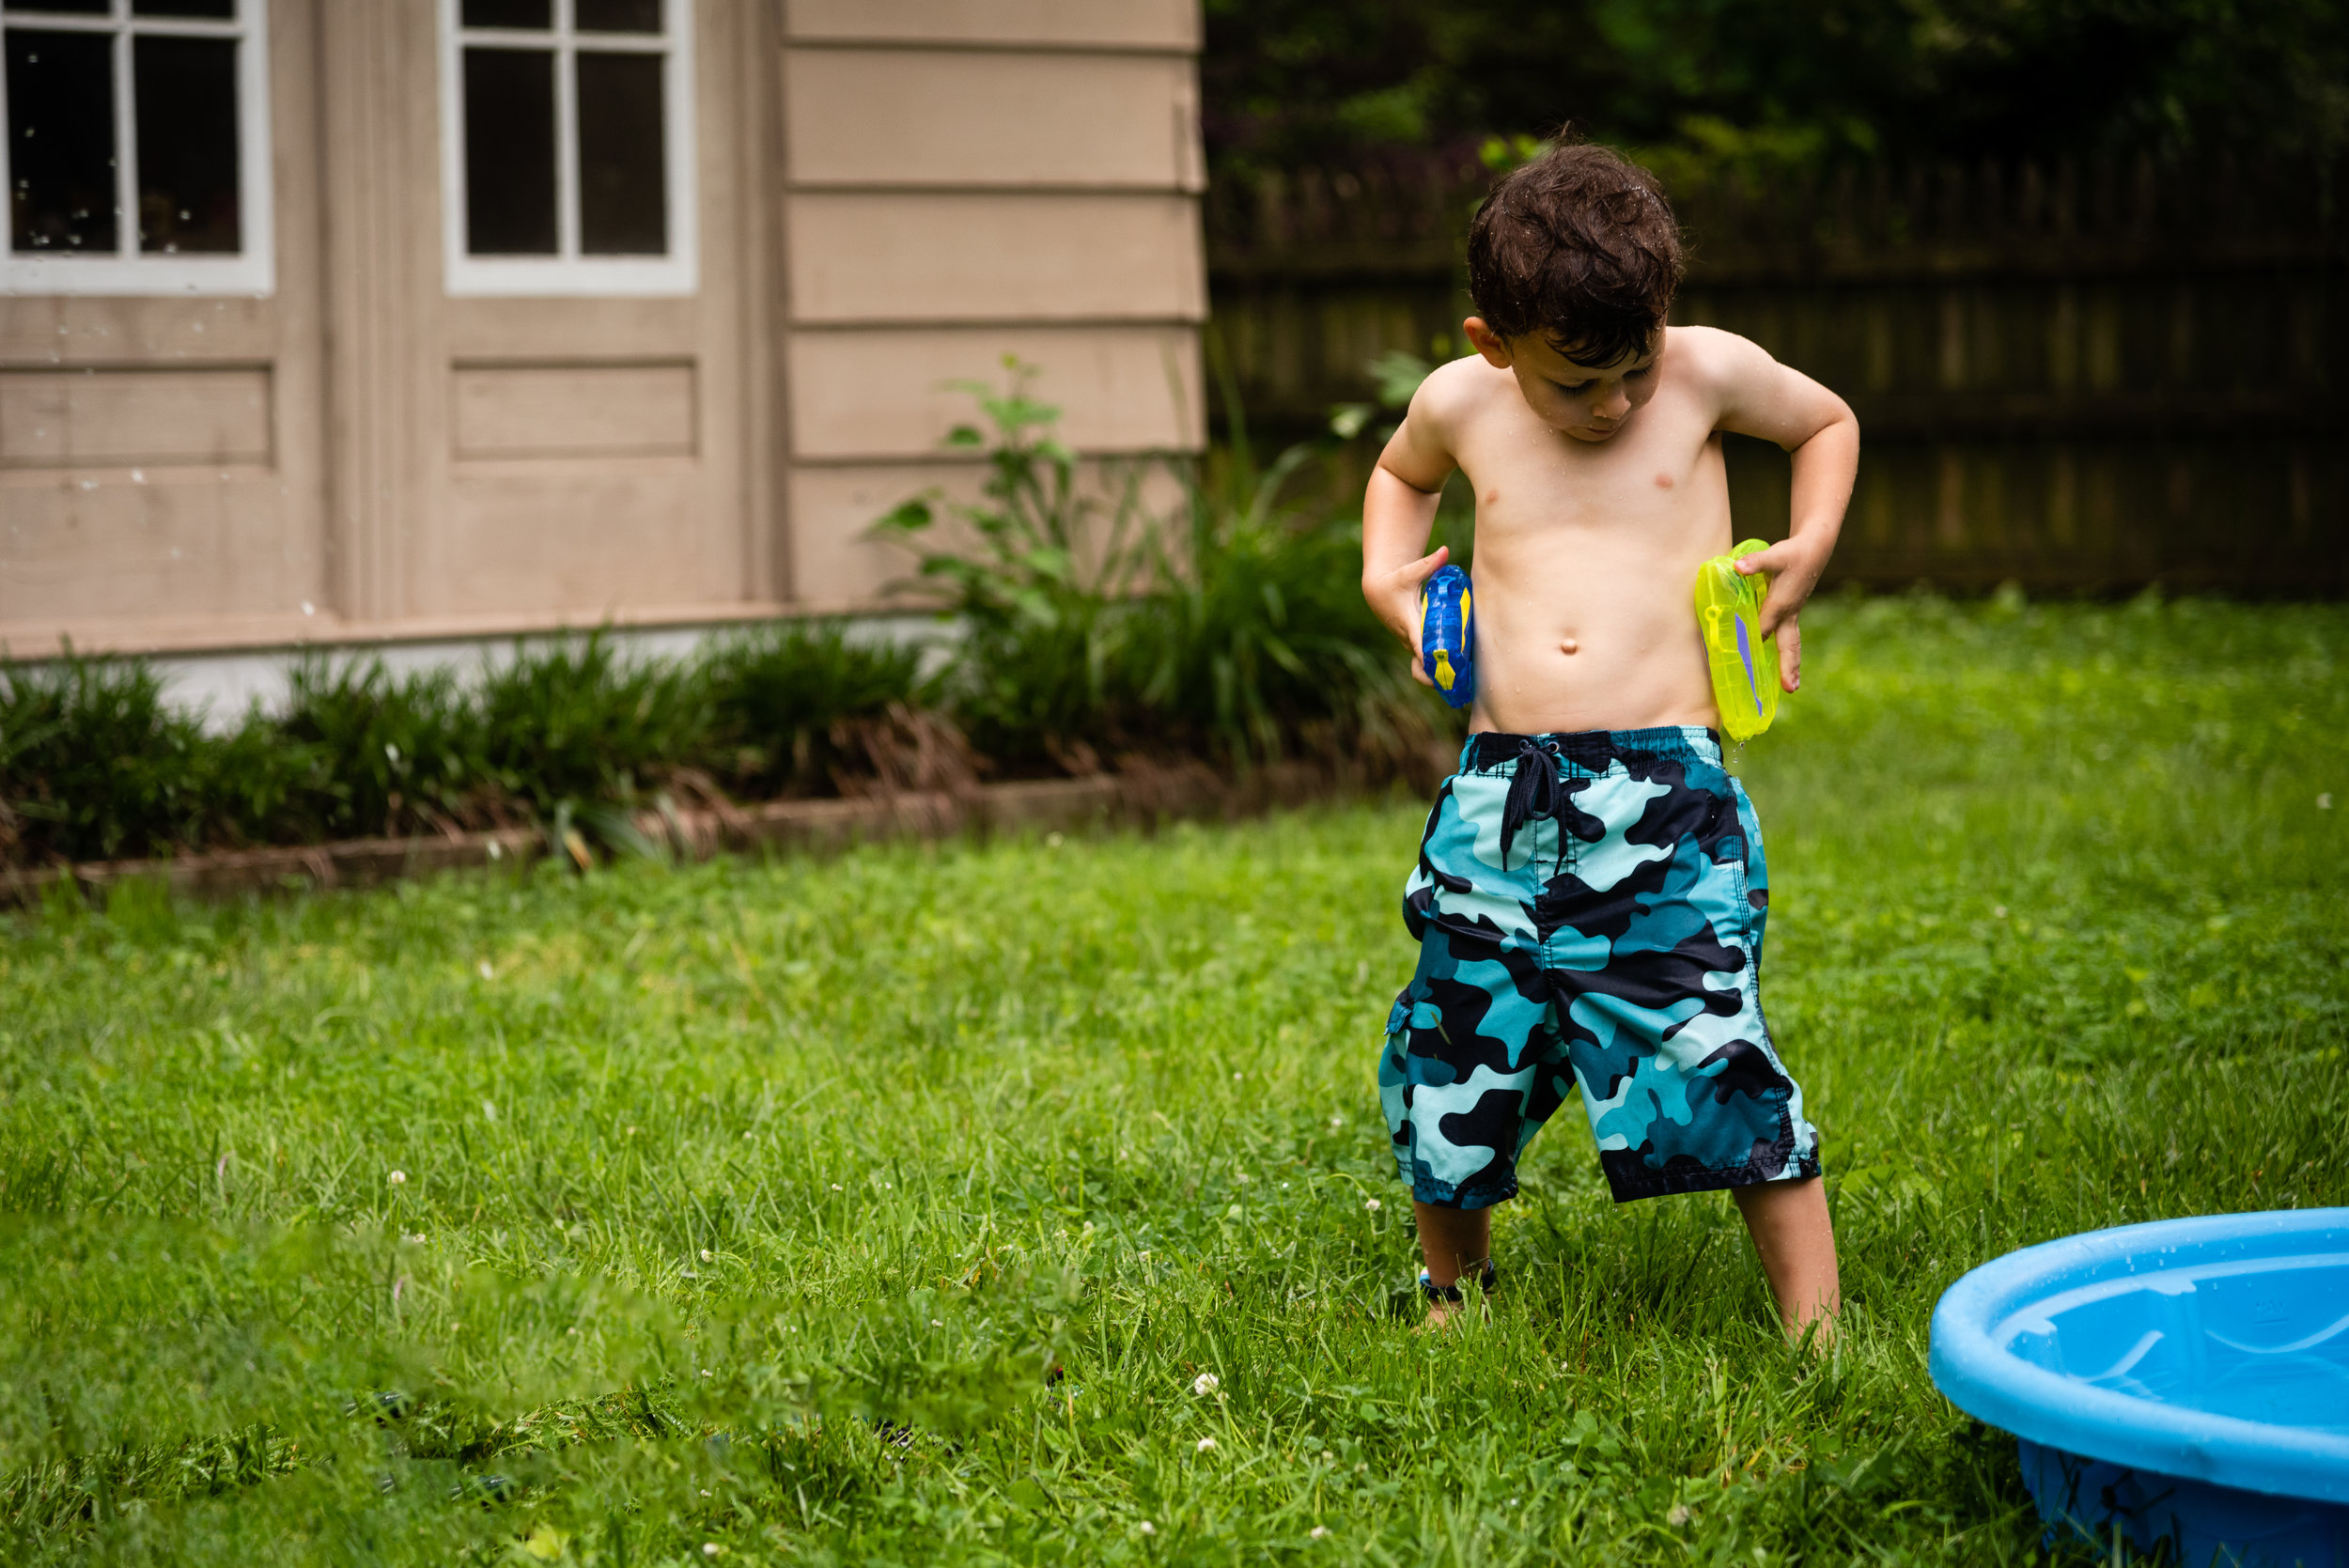 Boy pretending to holster water guns by Northern Virginia Family Photographer Nicole Sanchez